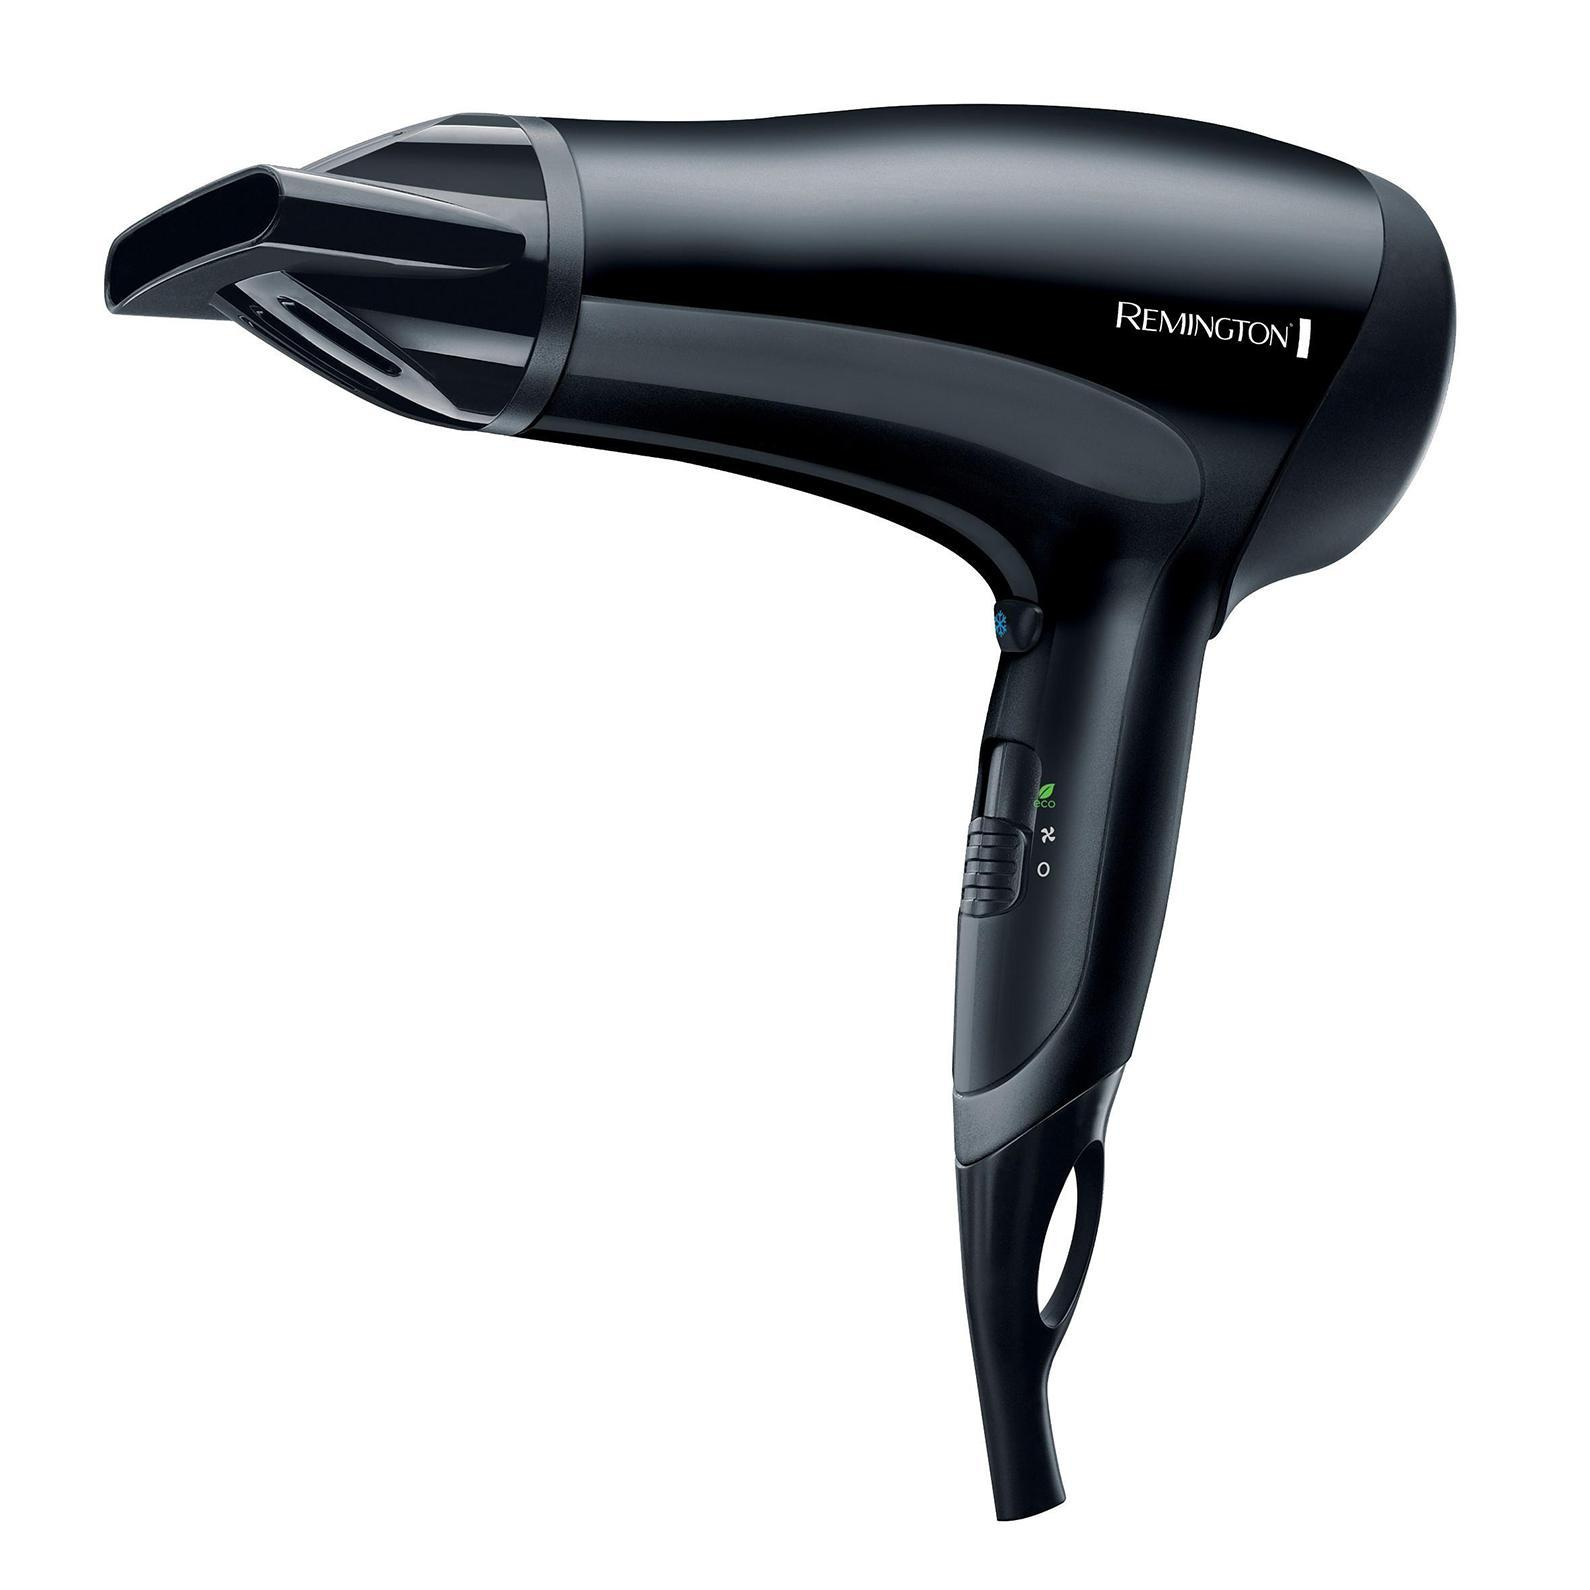 Remington D3010 Power Dry 2000 фен